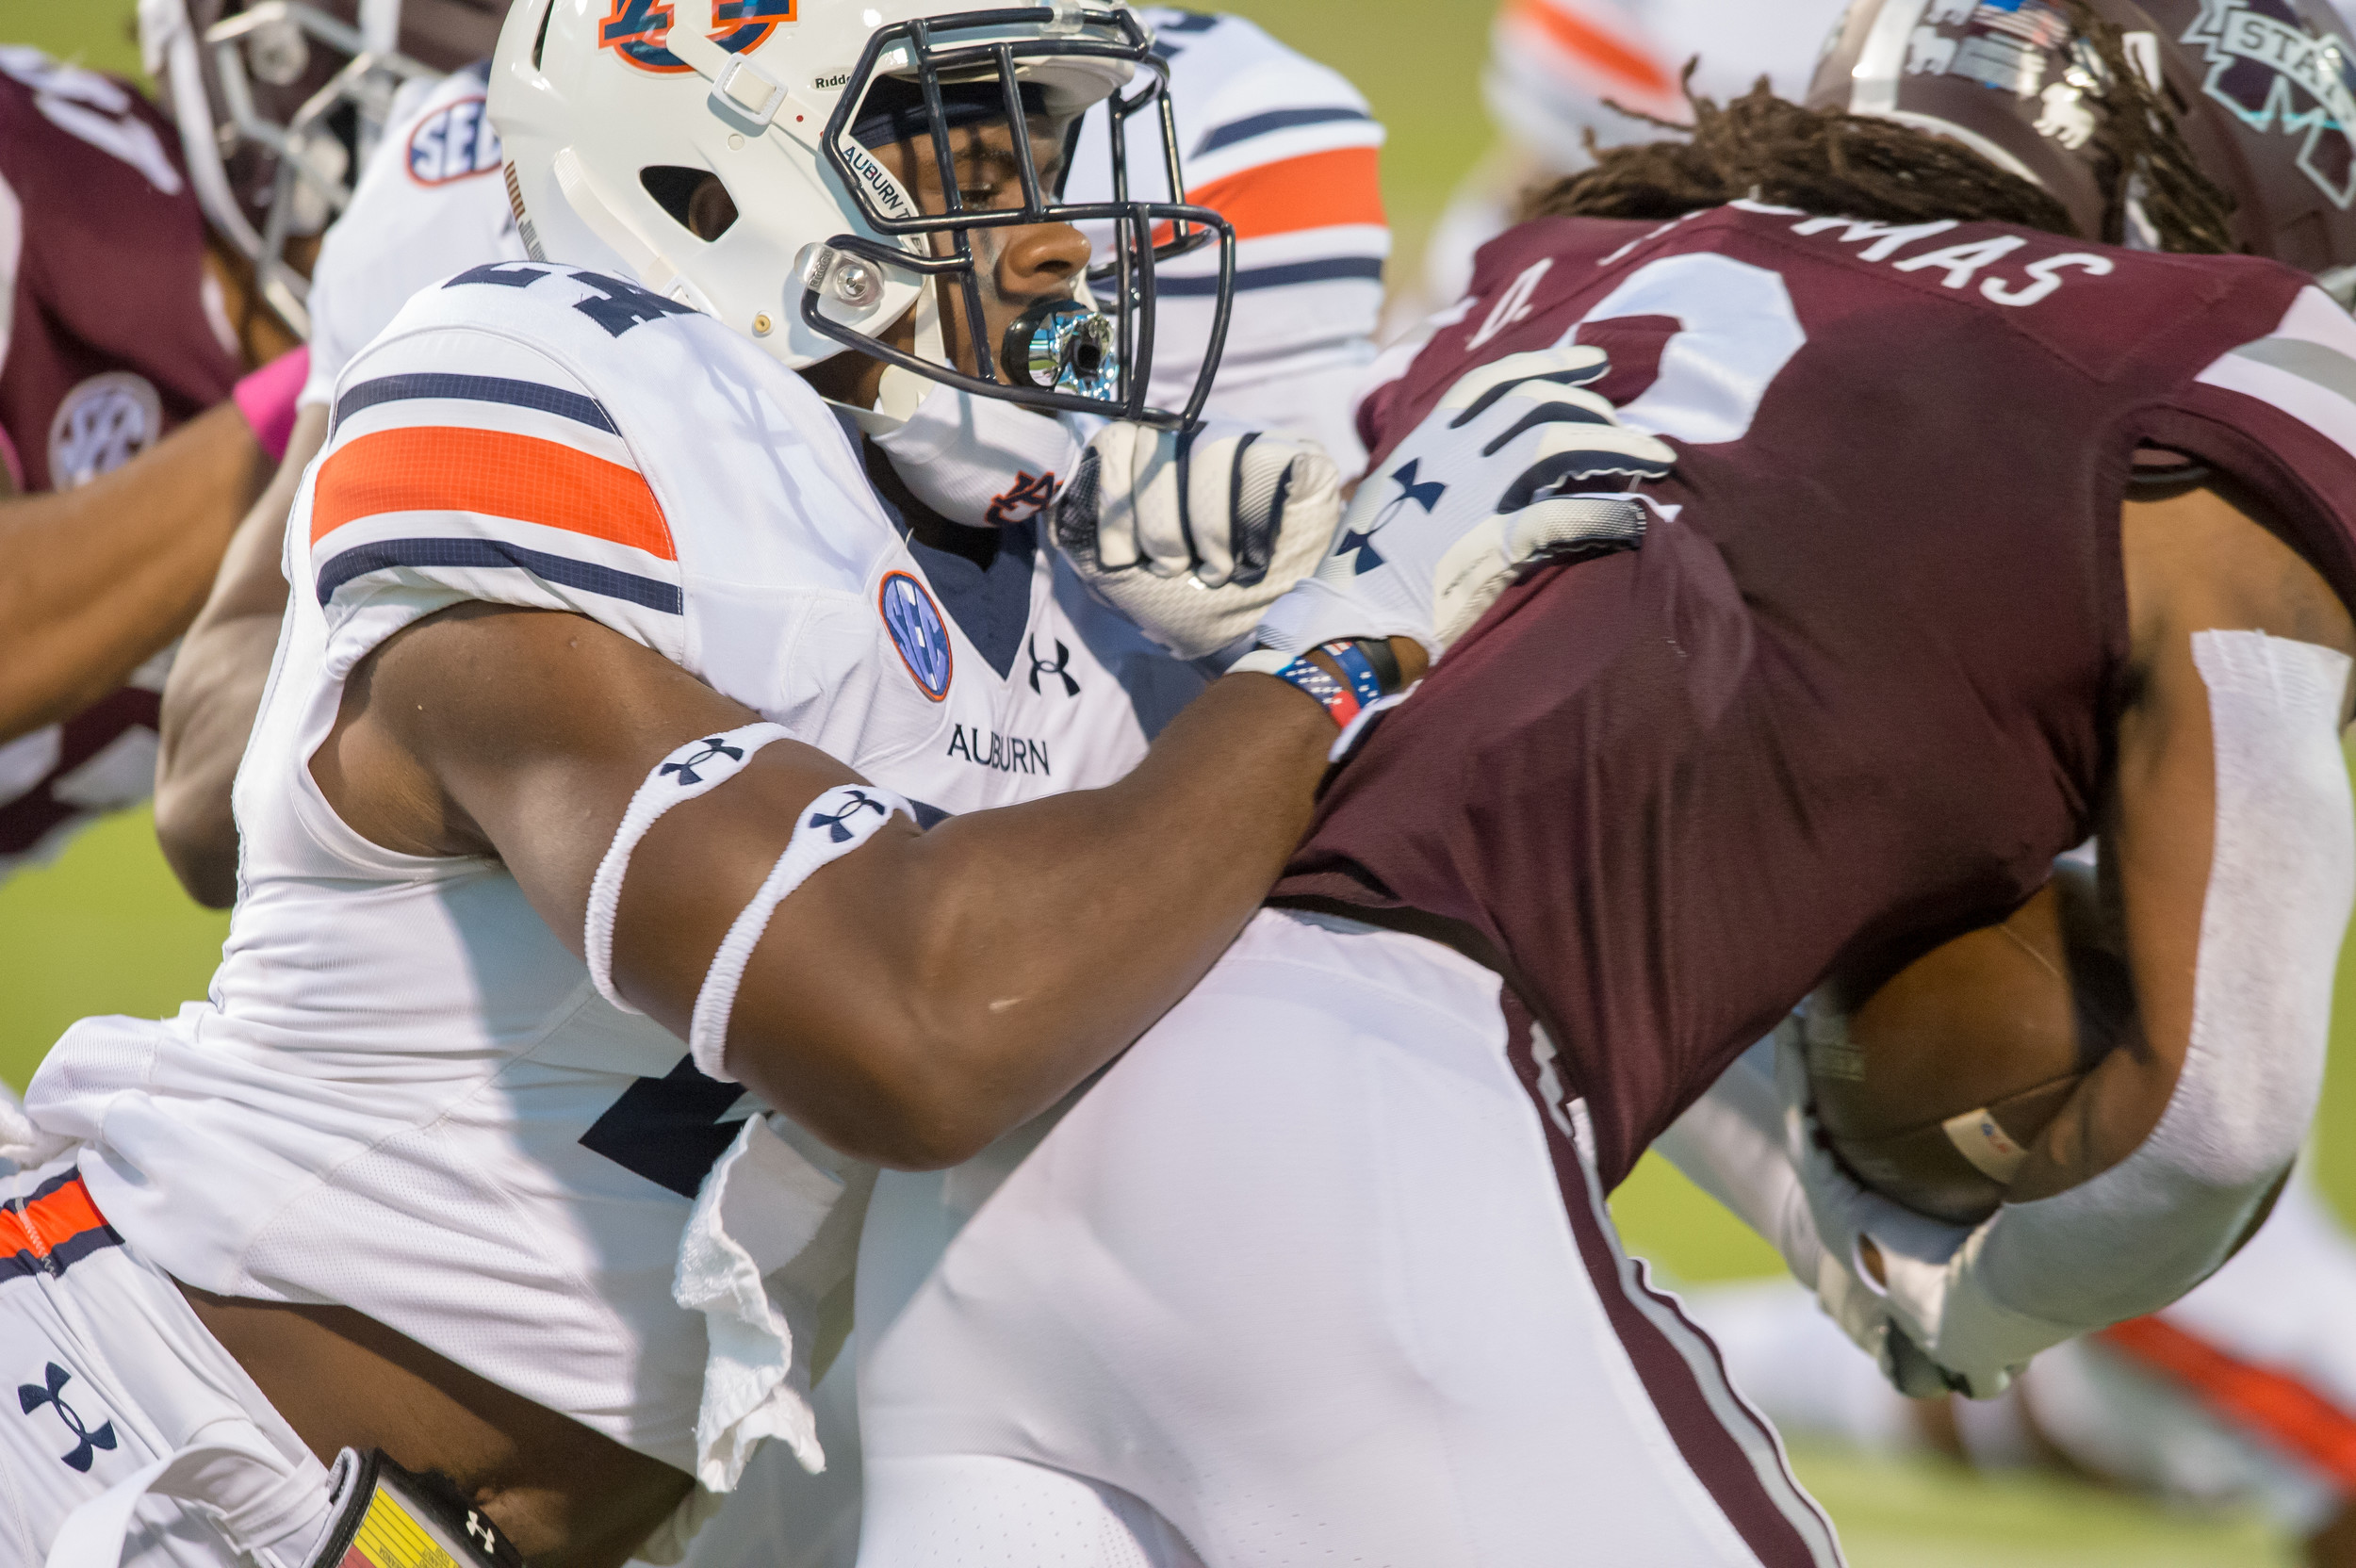 Auburn Tigers defensive back Daniel Thomas (24) tackles Mississippi State Bulldogs cornerback Jamal Peters (2) during the first half of Saturday's game, at Davis Wade Stadium in Starkville, MS. Daily Mountain Eagle -  Jeff Johnsey